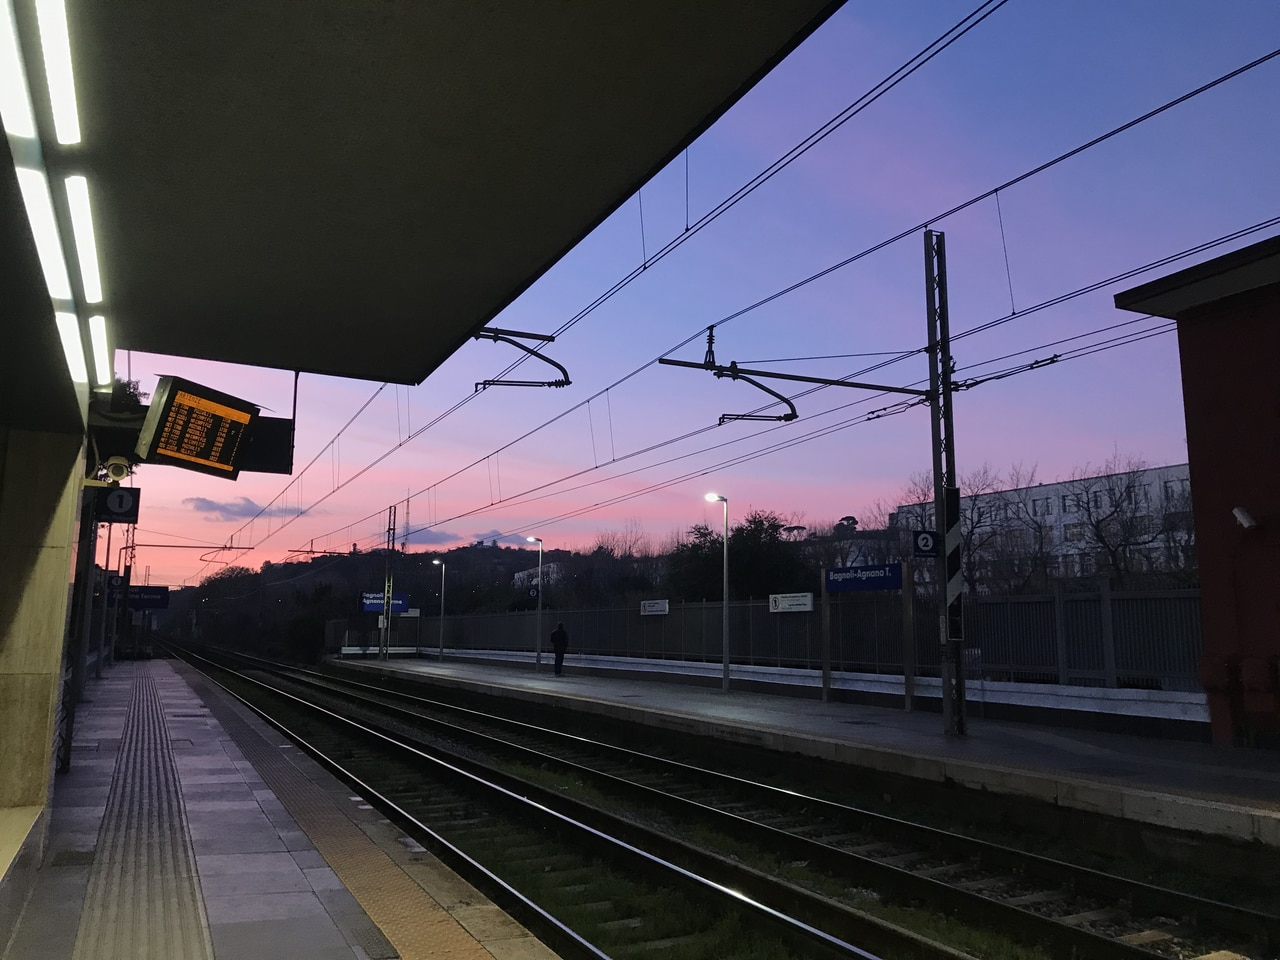 colors, love, railway station and trips